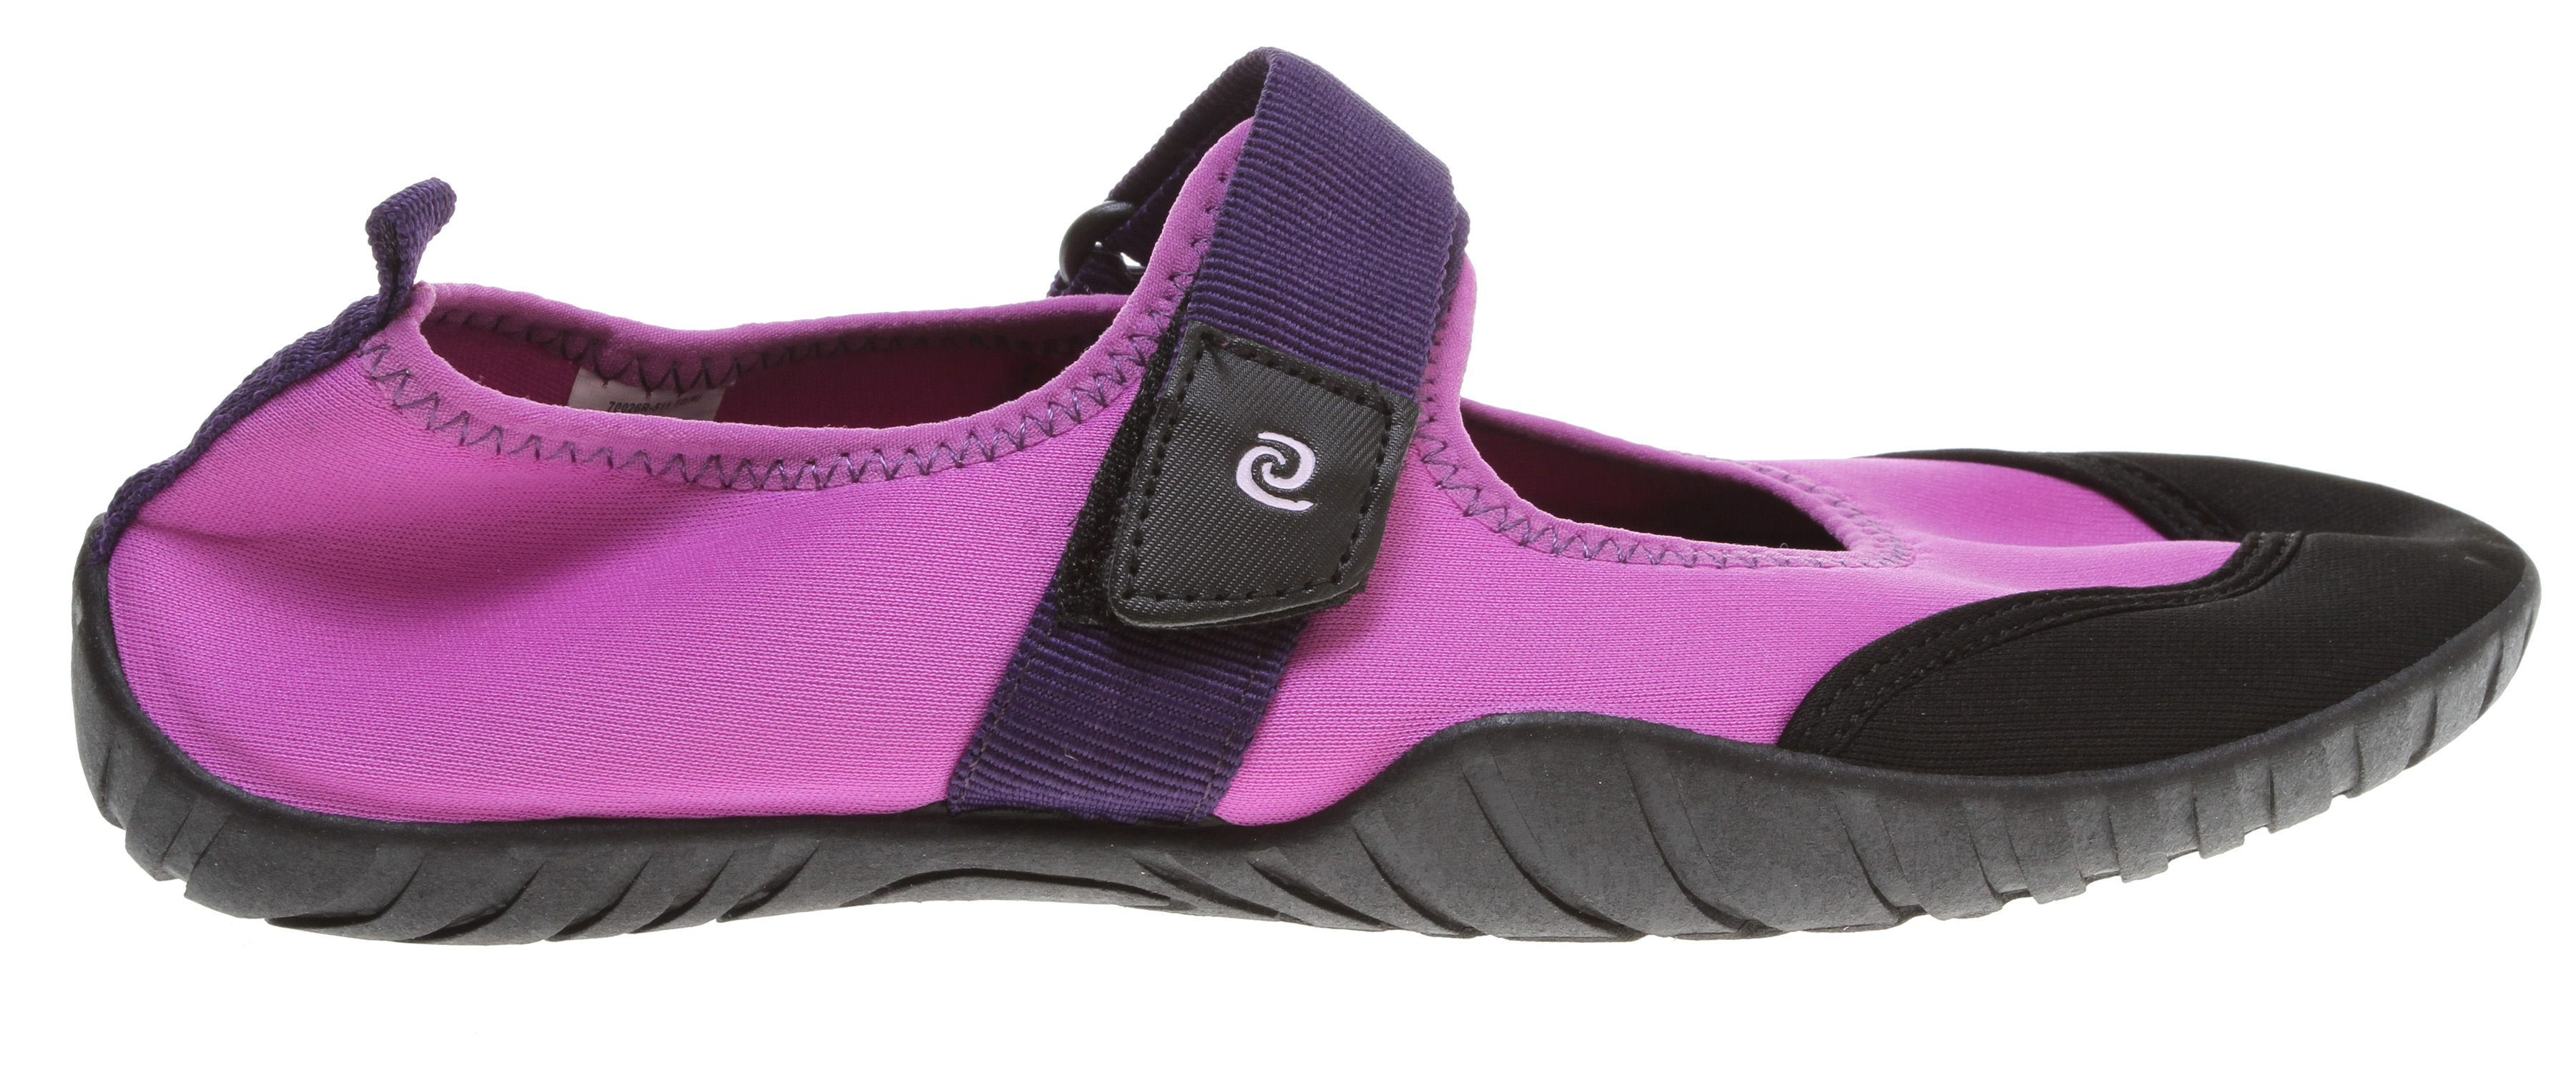 Entertainment Inexpensive water shoes with a slip on fit. Produced with innovative methods using recycled materials for high quality footwear. Rafters also takes great care the environment. Rafters are durable, high-quality footwear at an affordable price.Key Features of the Rafters Santa Cruz Water Shoes: Stretchy nylon fabric upper Rubber sole Available in whole sizes only, half sizes please order the next size up - $9.95